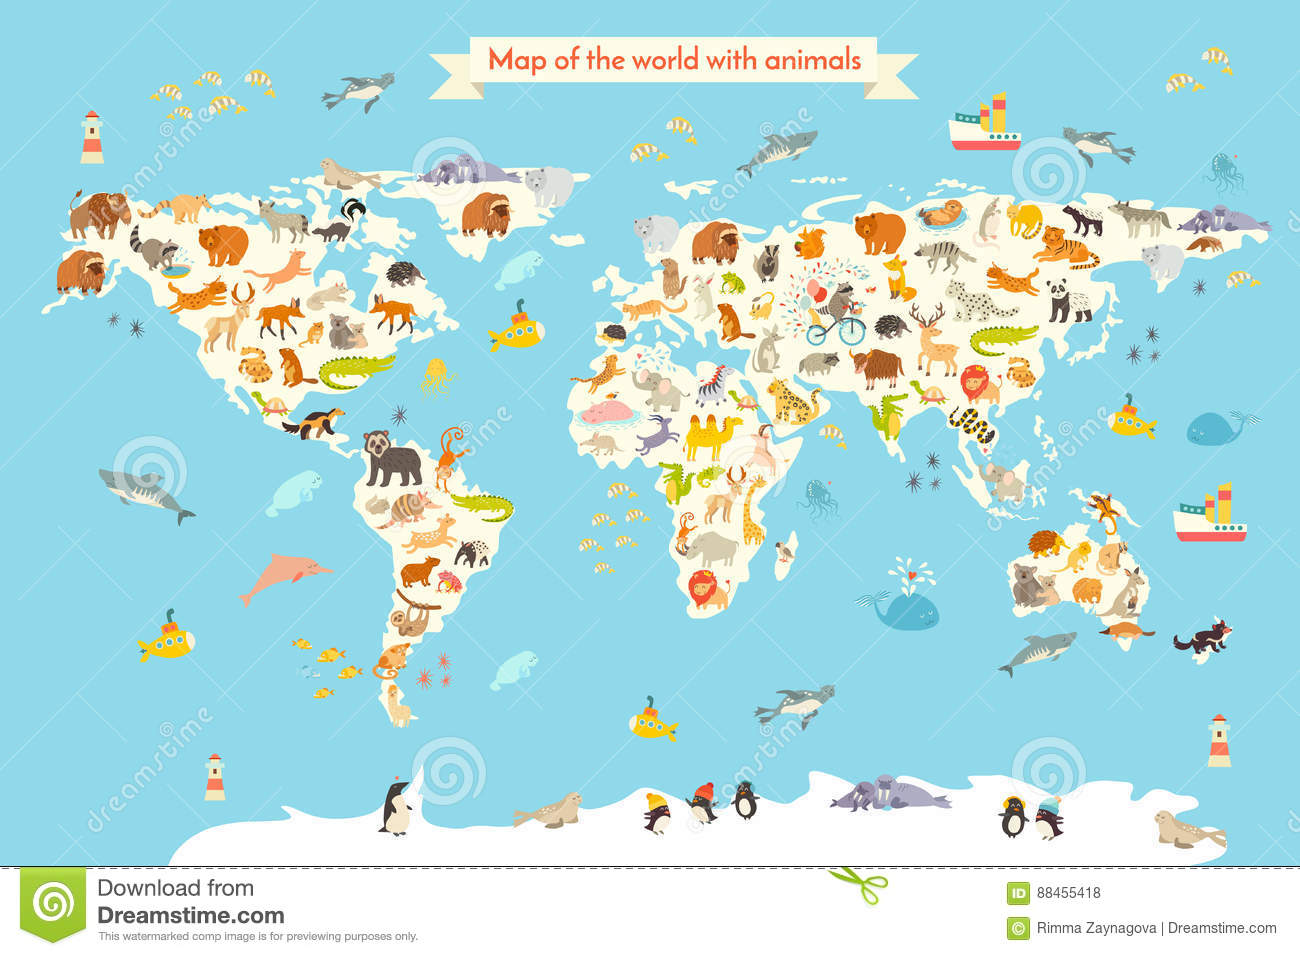 Map of continents and oceans thailand map borderlands 2 map animals world map stock vector illustration of cute 88455418 animals world map colorful cartoon vector illustration children kids preschool education baby gumiabroncs